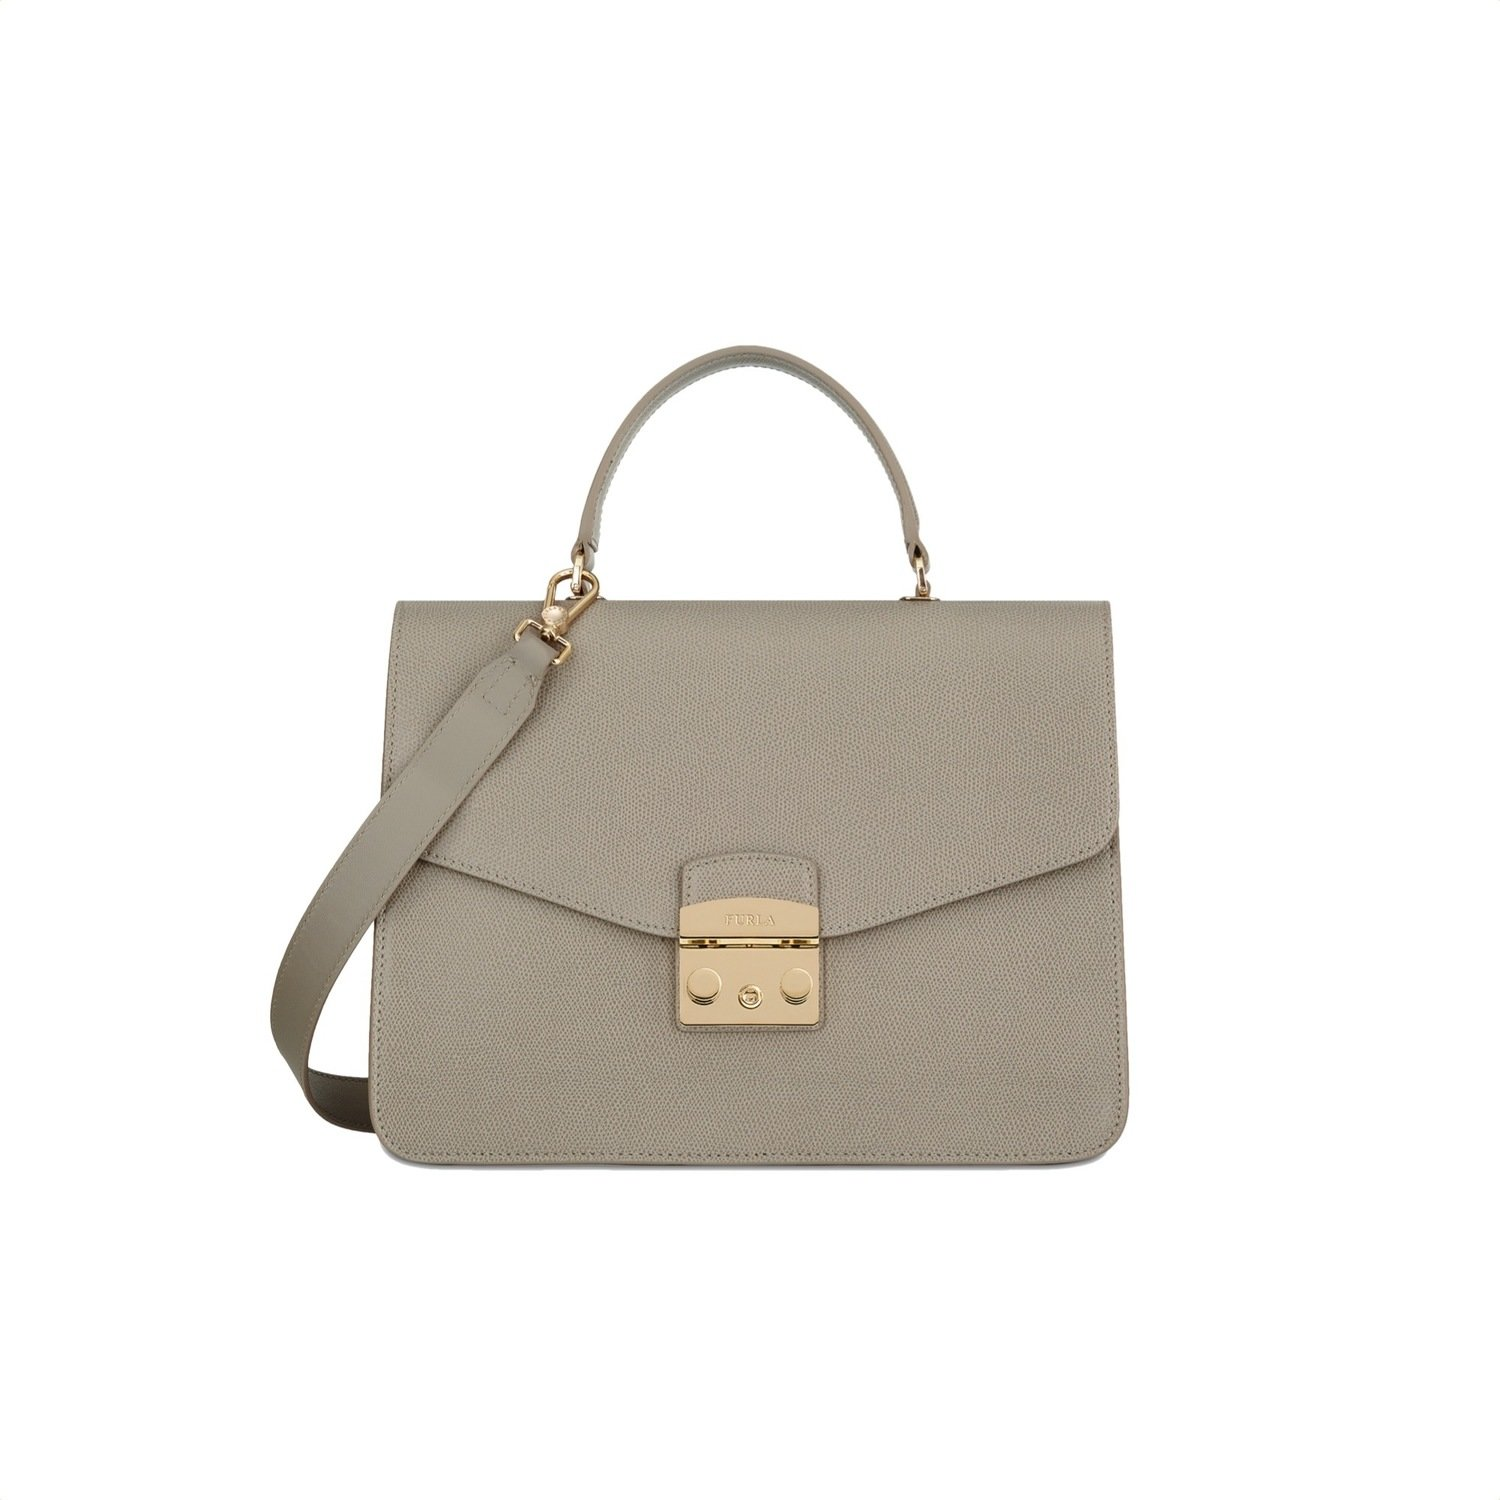 FURLA - Metropolis M Top Handle - Sabbia